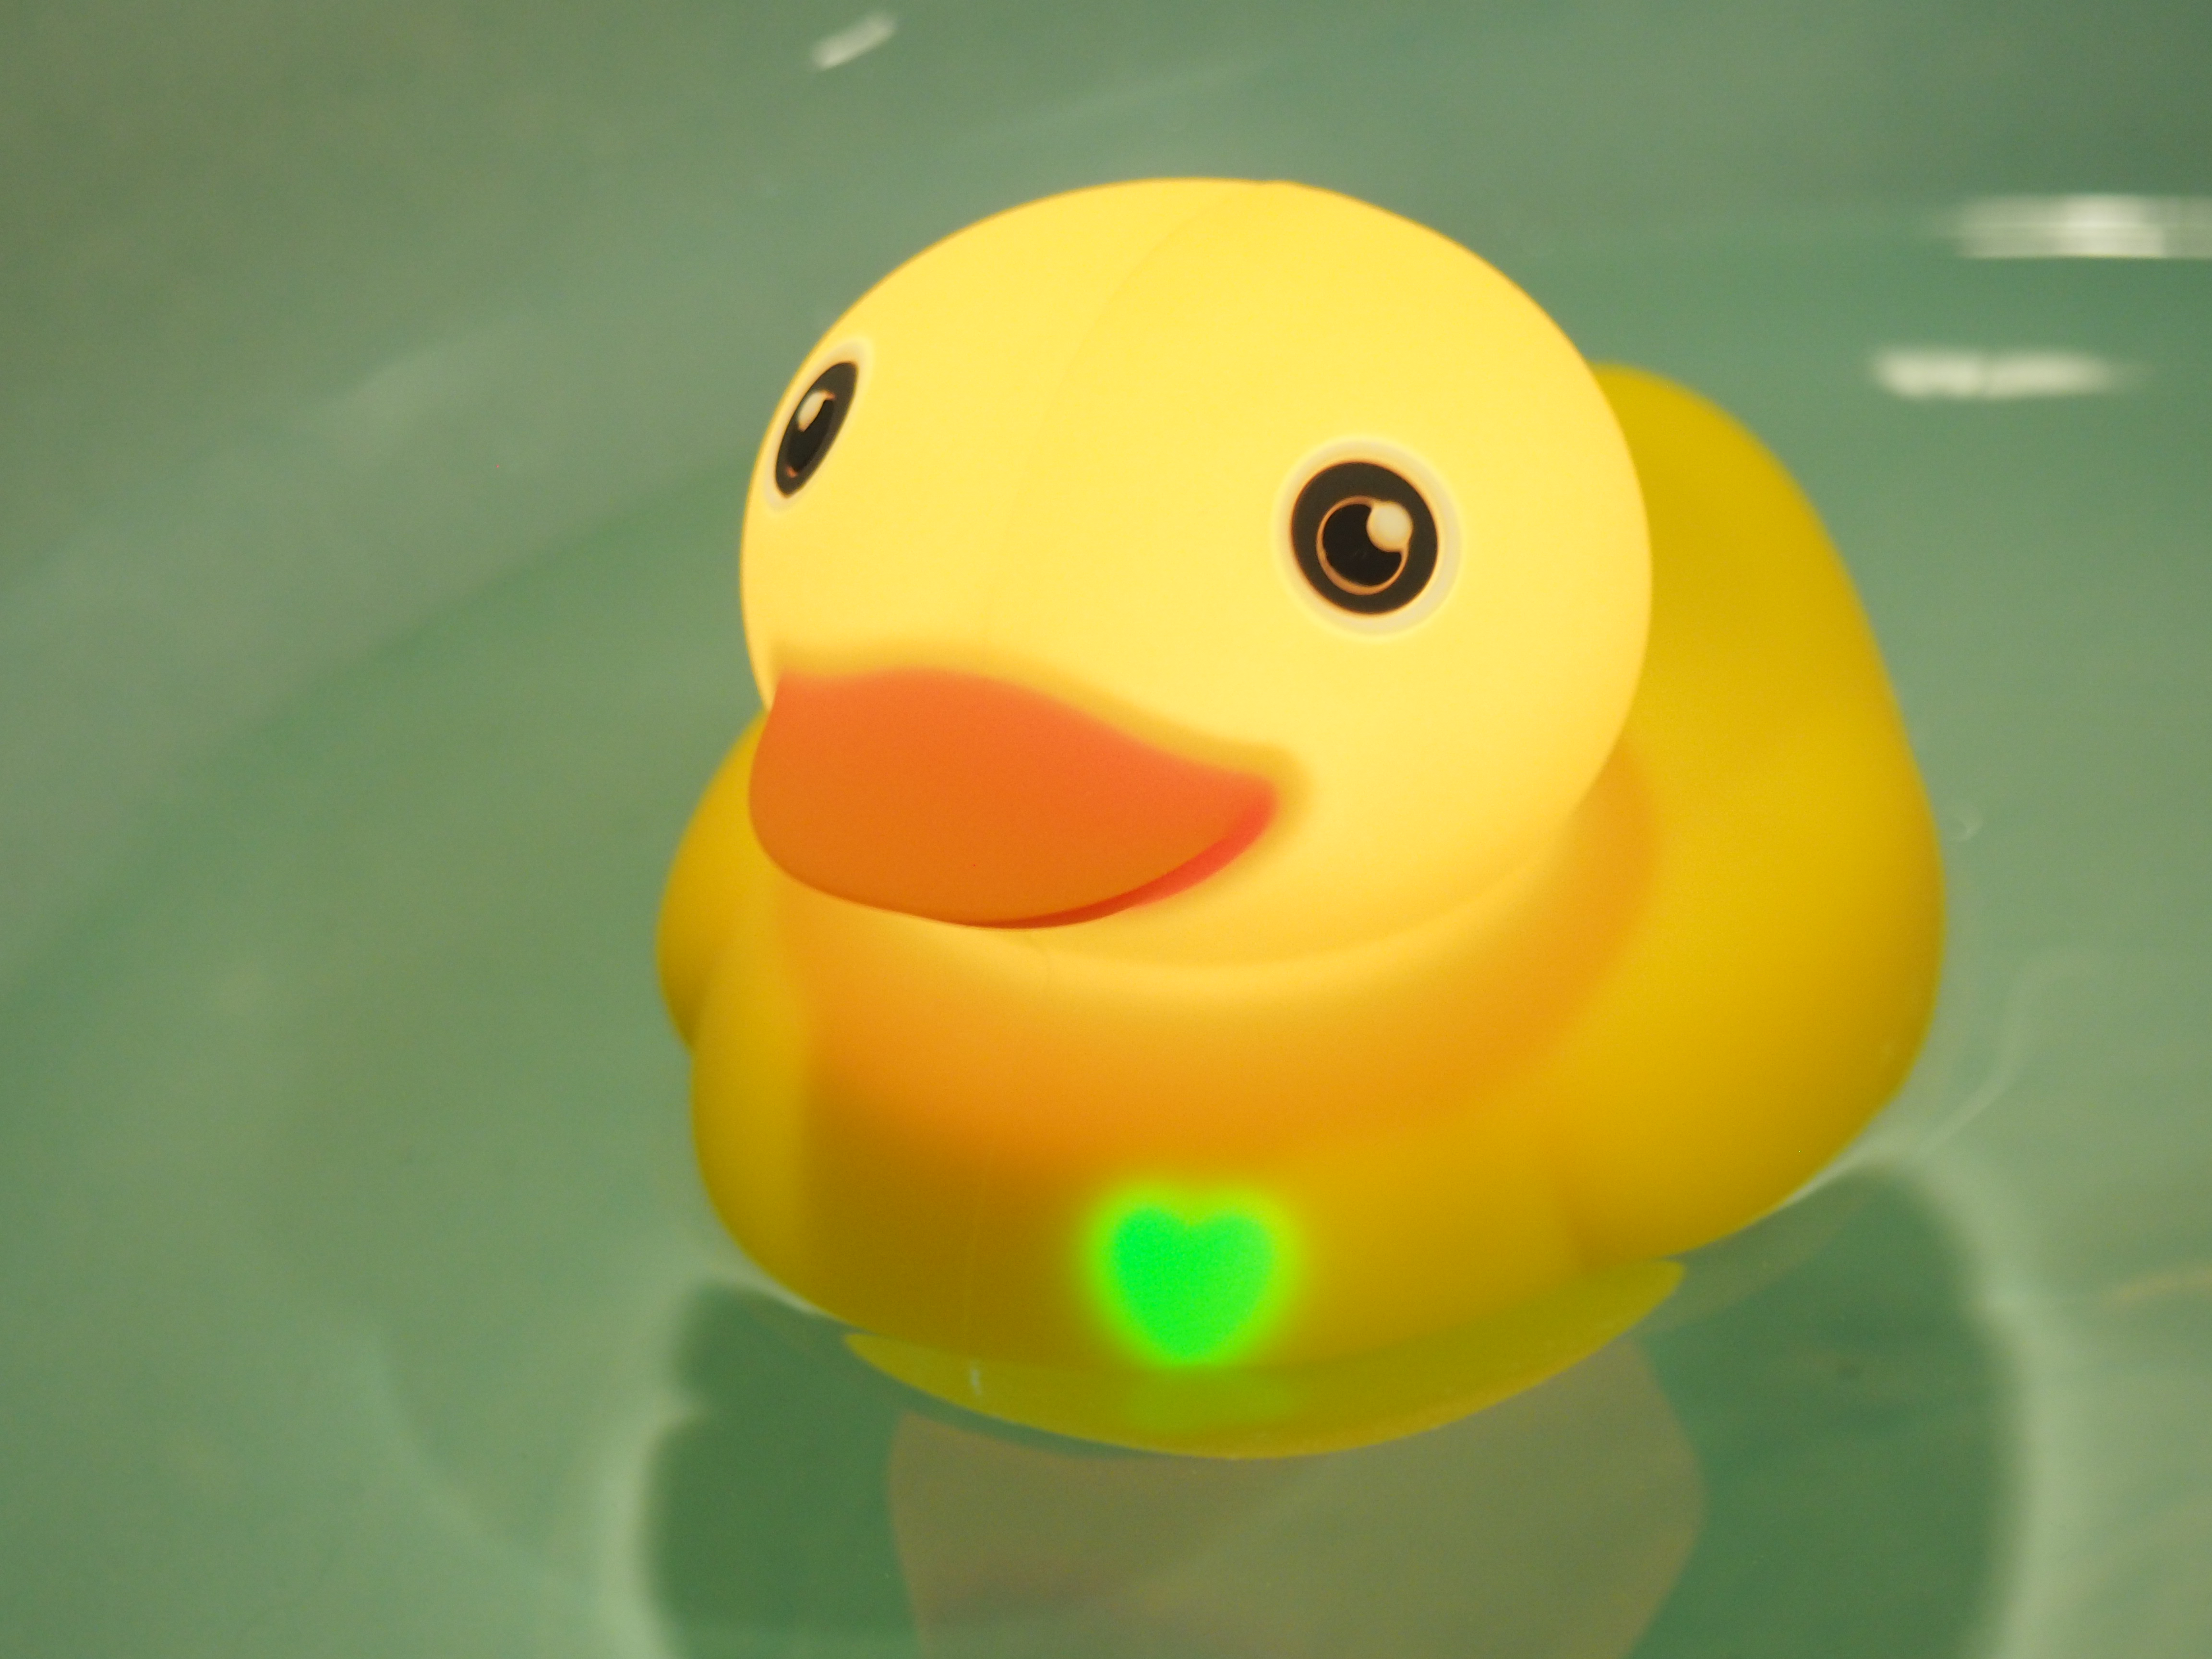 Playing around with a smart rubber duck | TechCrunch